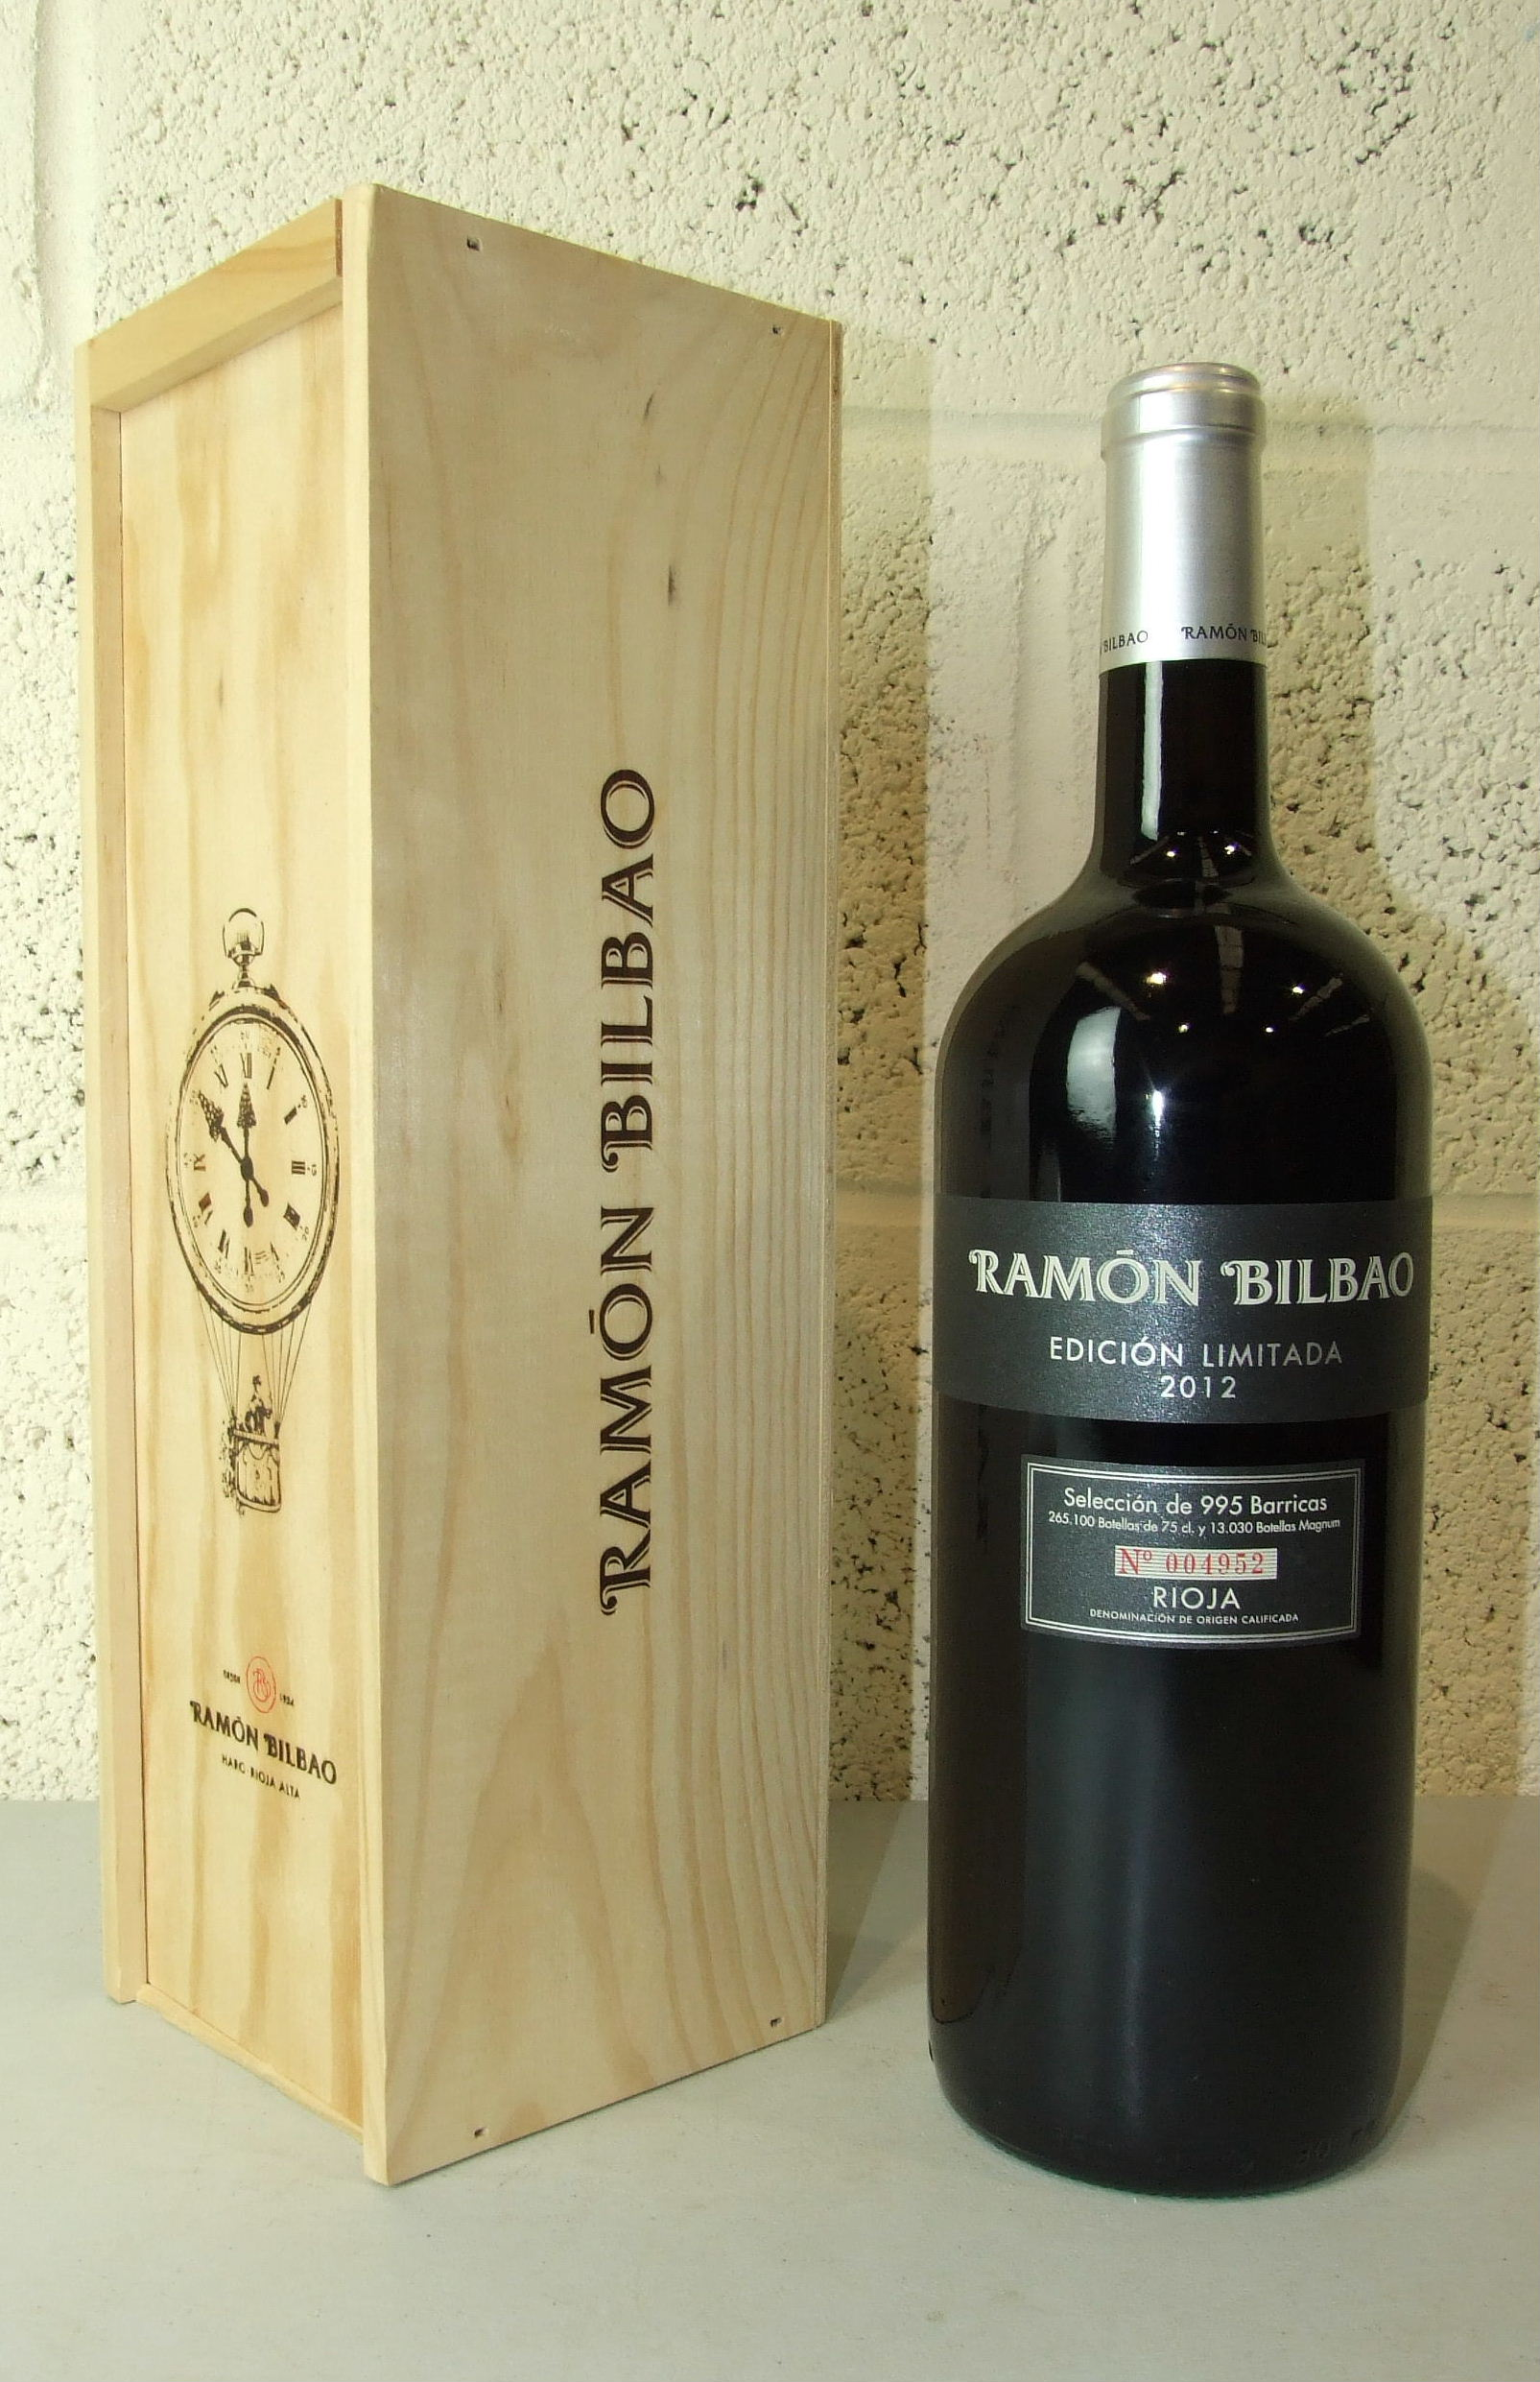 Lot 28 - Spain, Rioja Ramon Bilbao 2012, one magnum, OWC, (1).